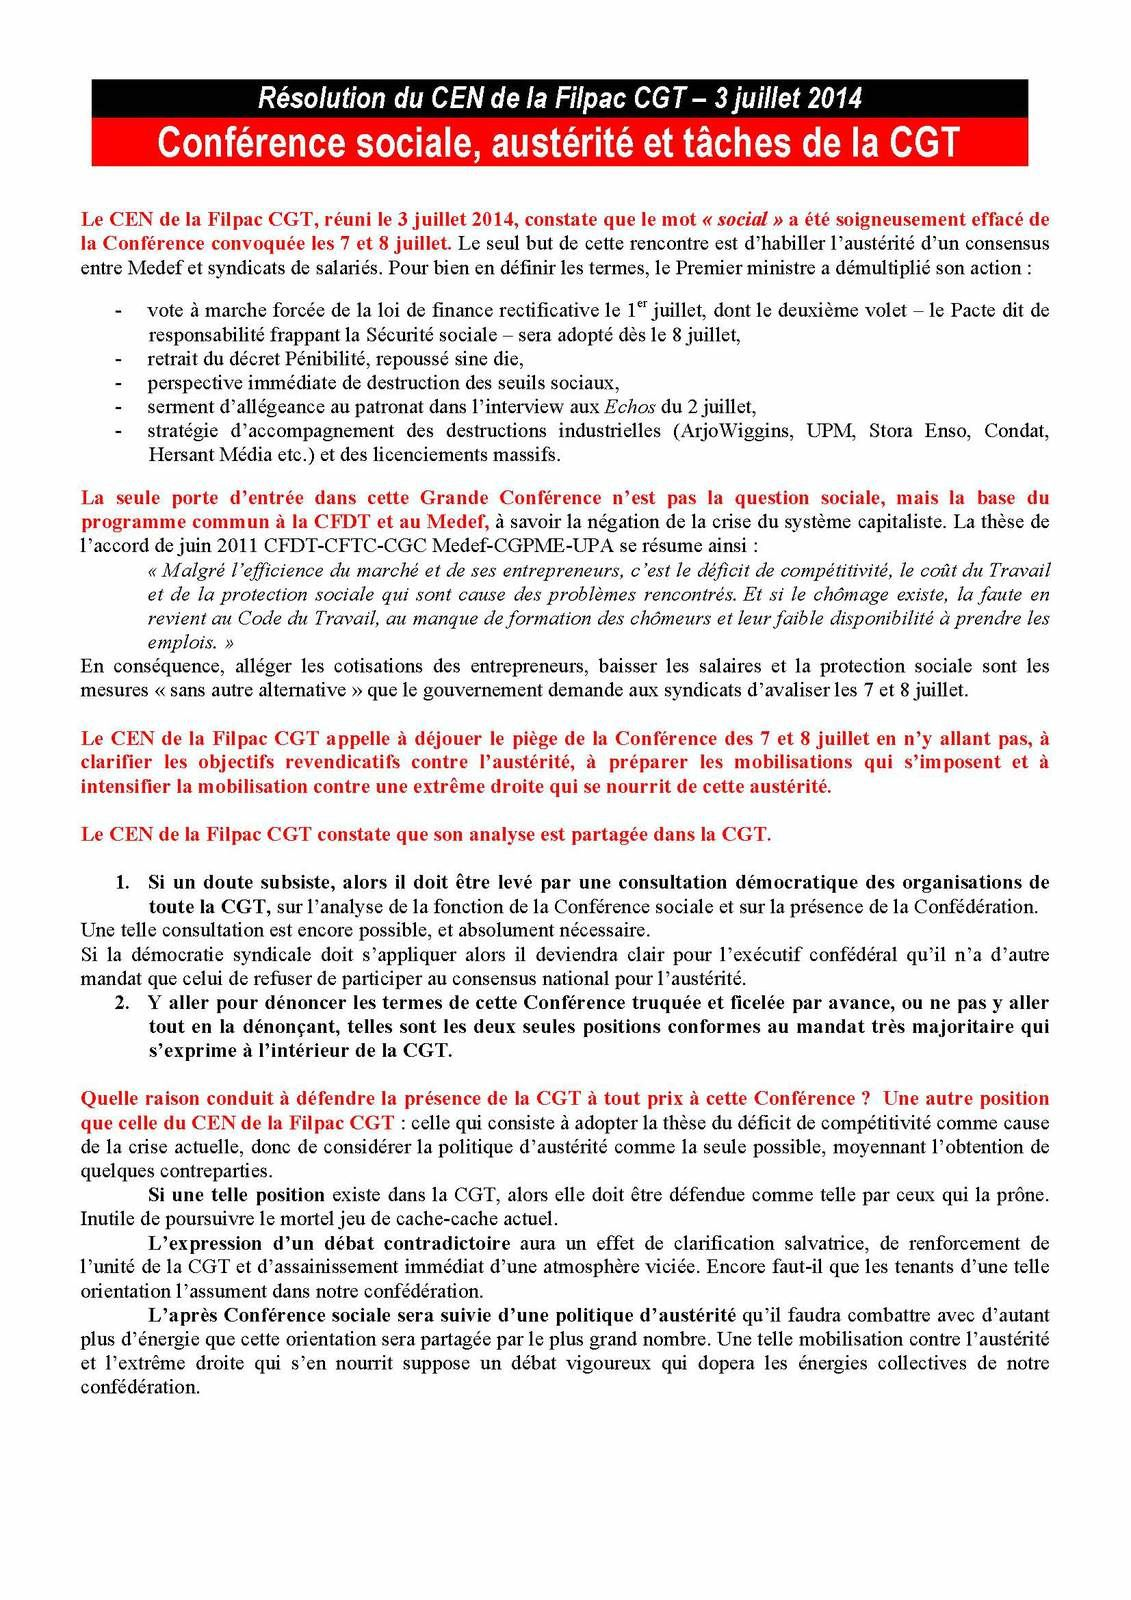 RESOLUTION DU CEN DE LA FILPAC CGT